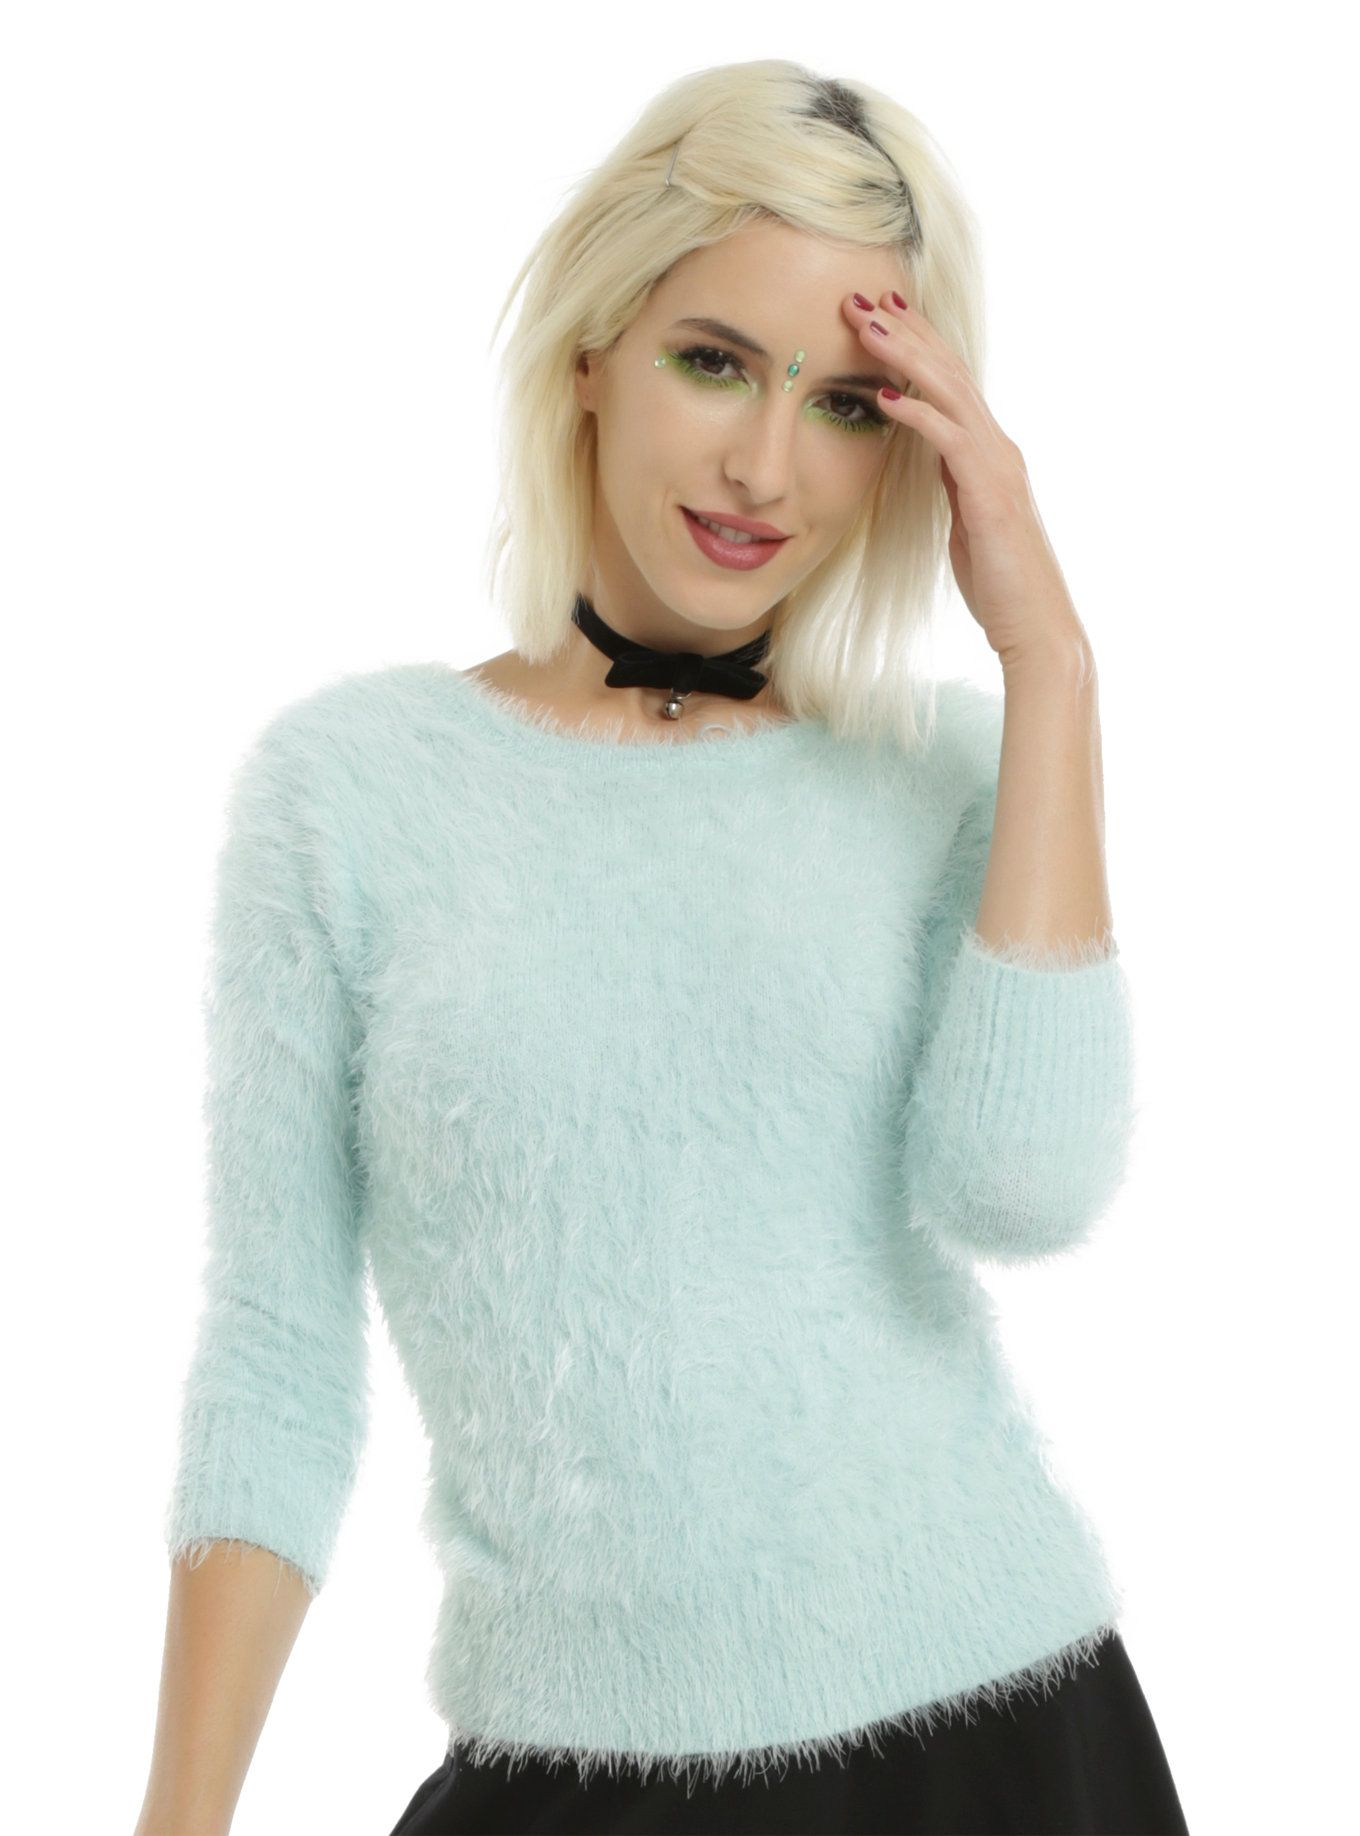 Share Hot girls in sweaters and nylons something